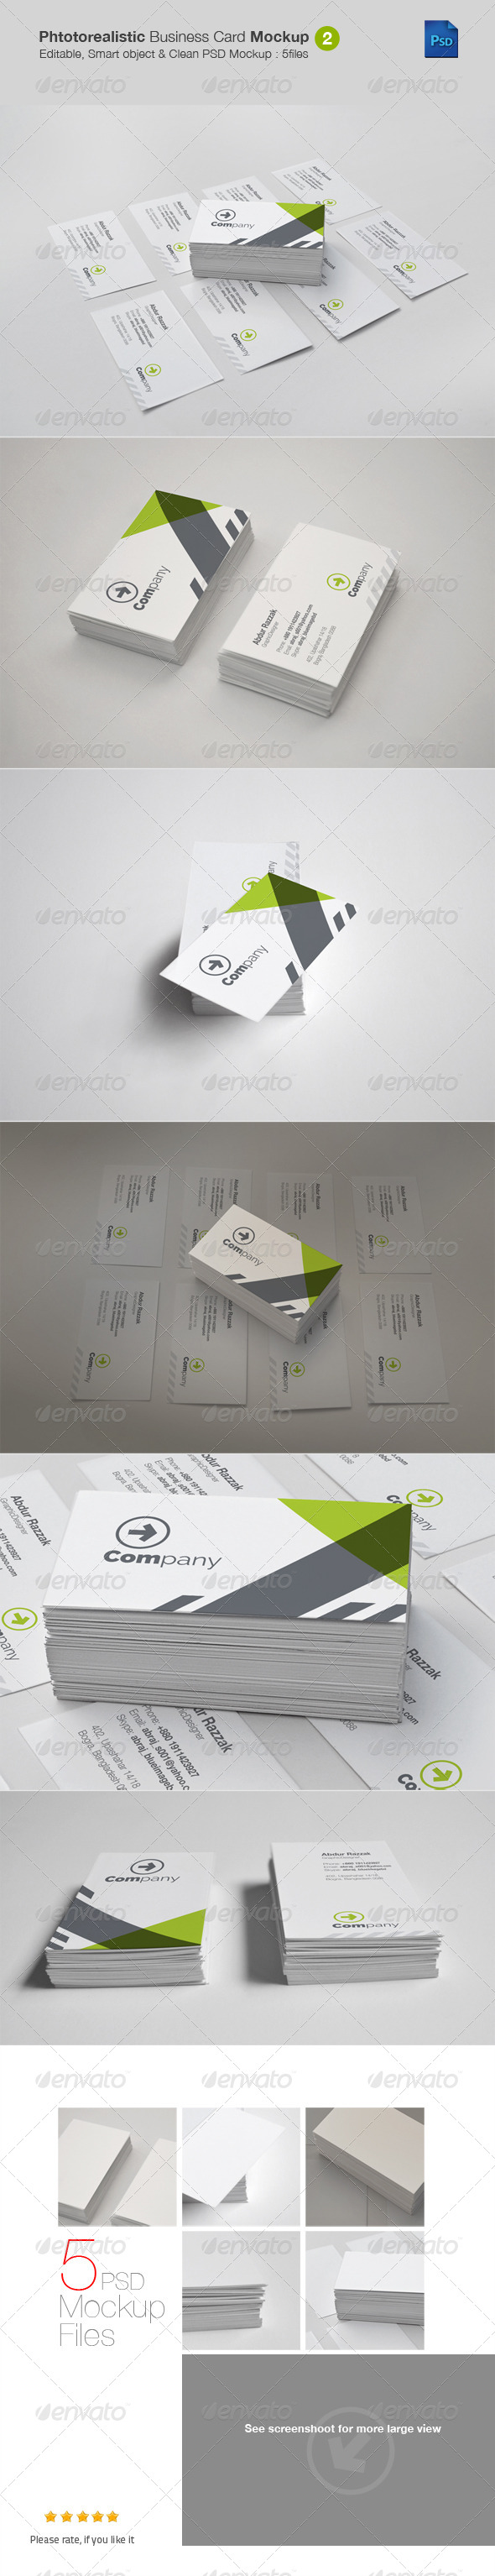 Photorealistic Business Card Mockup v2